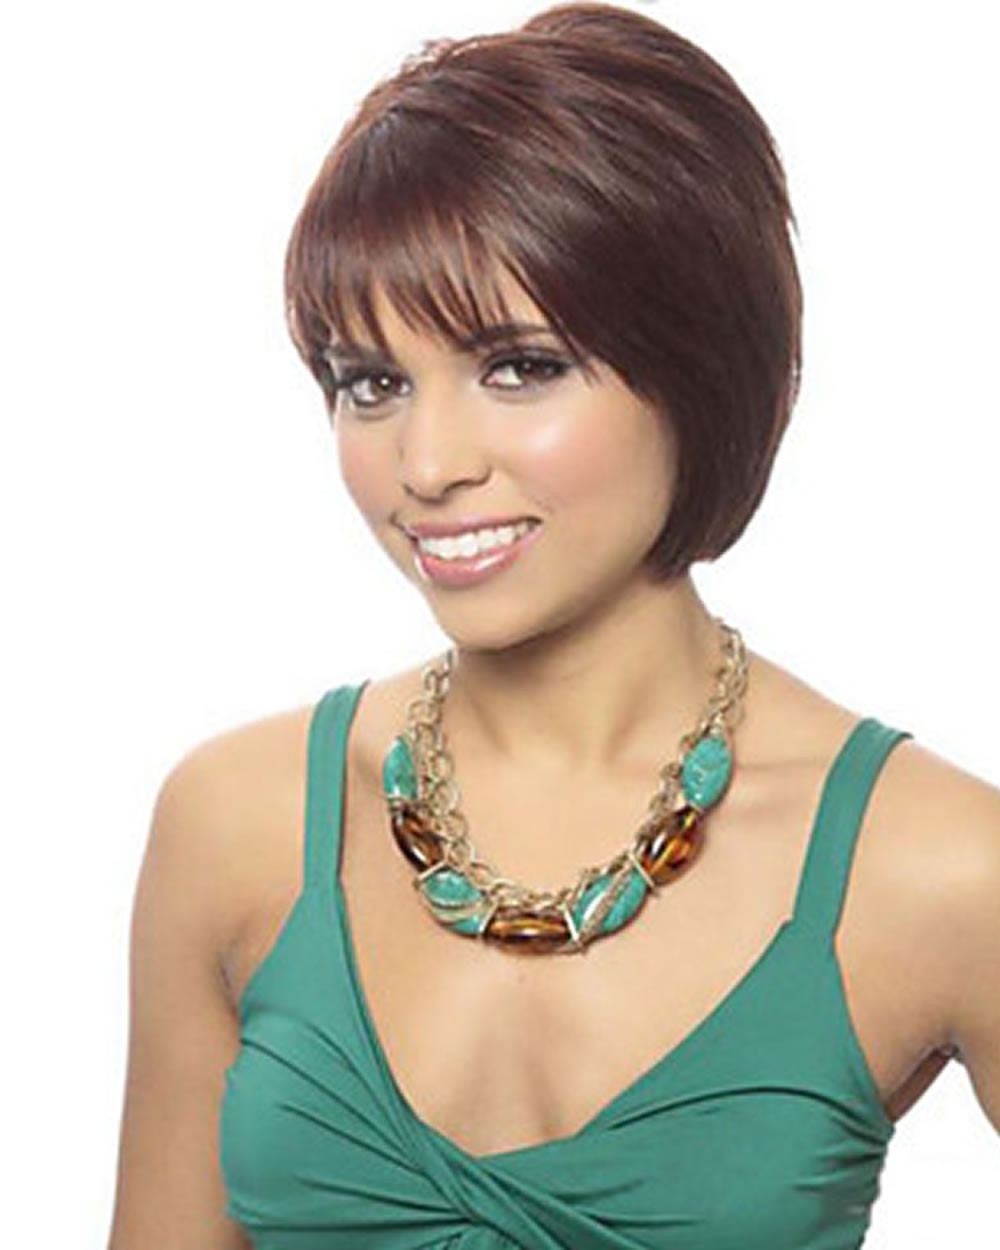 Haircuts Female  Feminine Short Hairstyles and Very Short Pixie Hair Colors